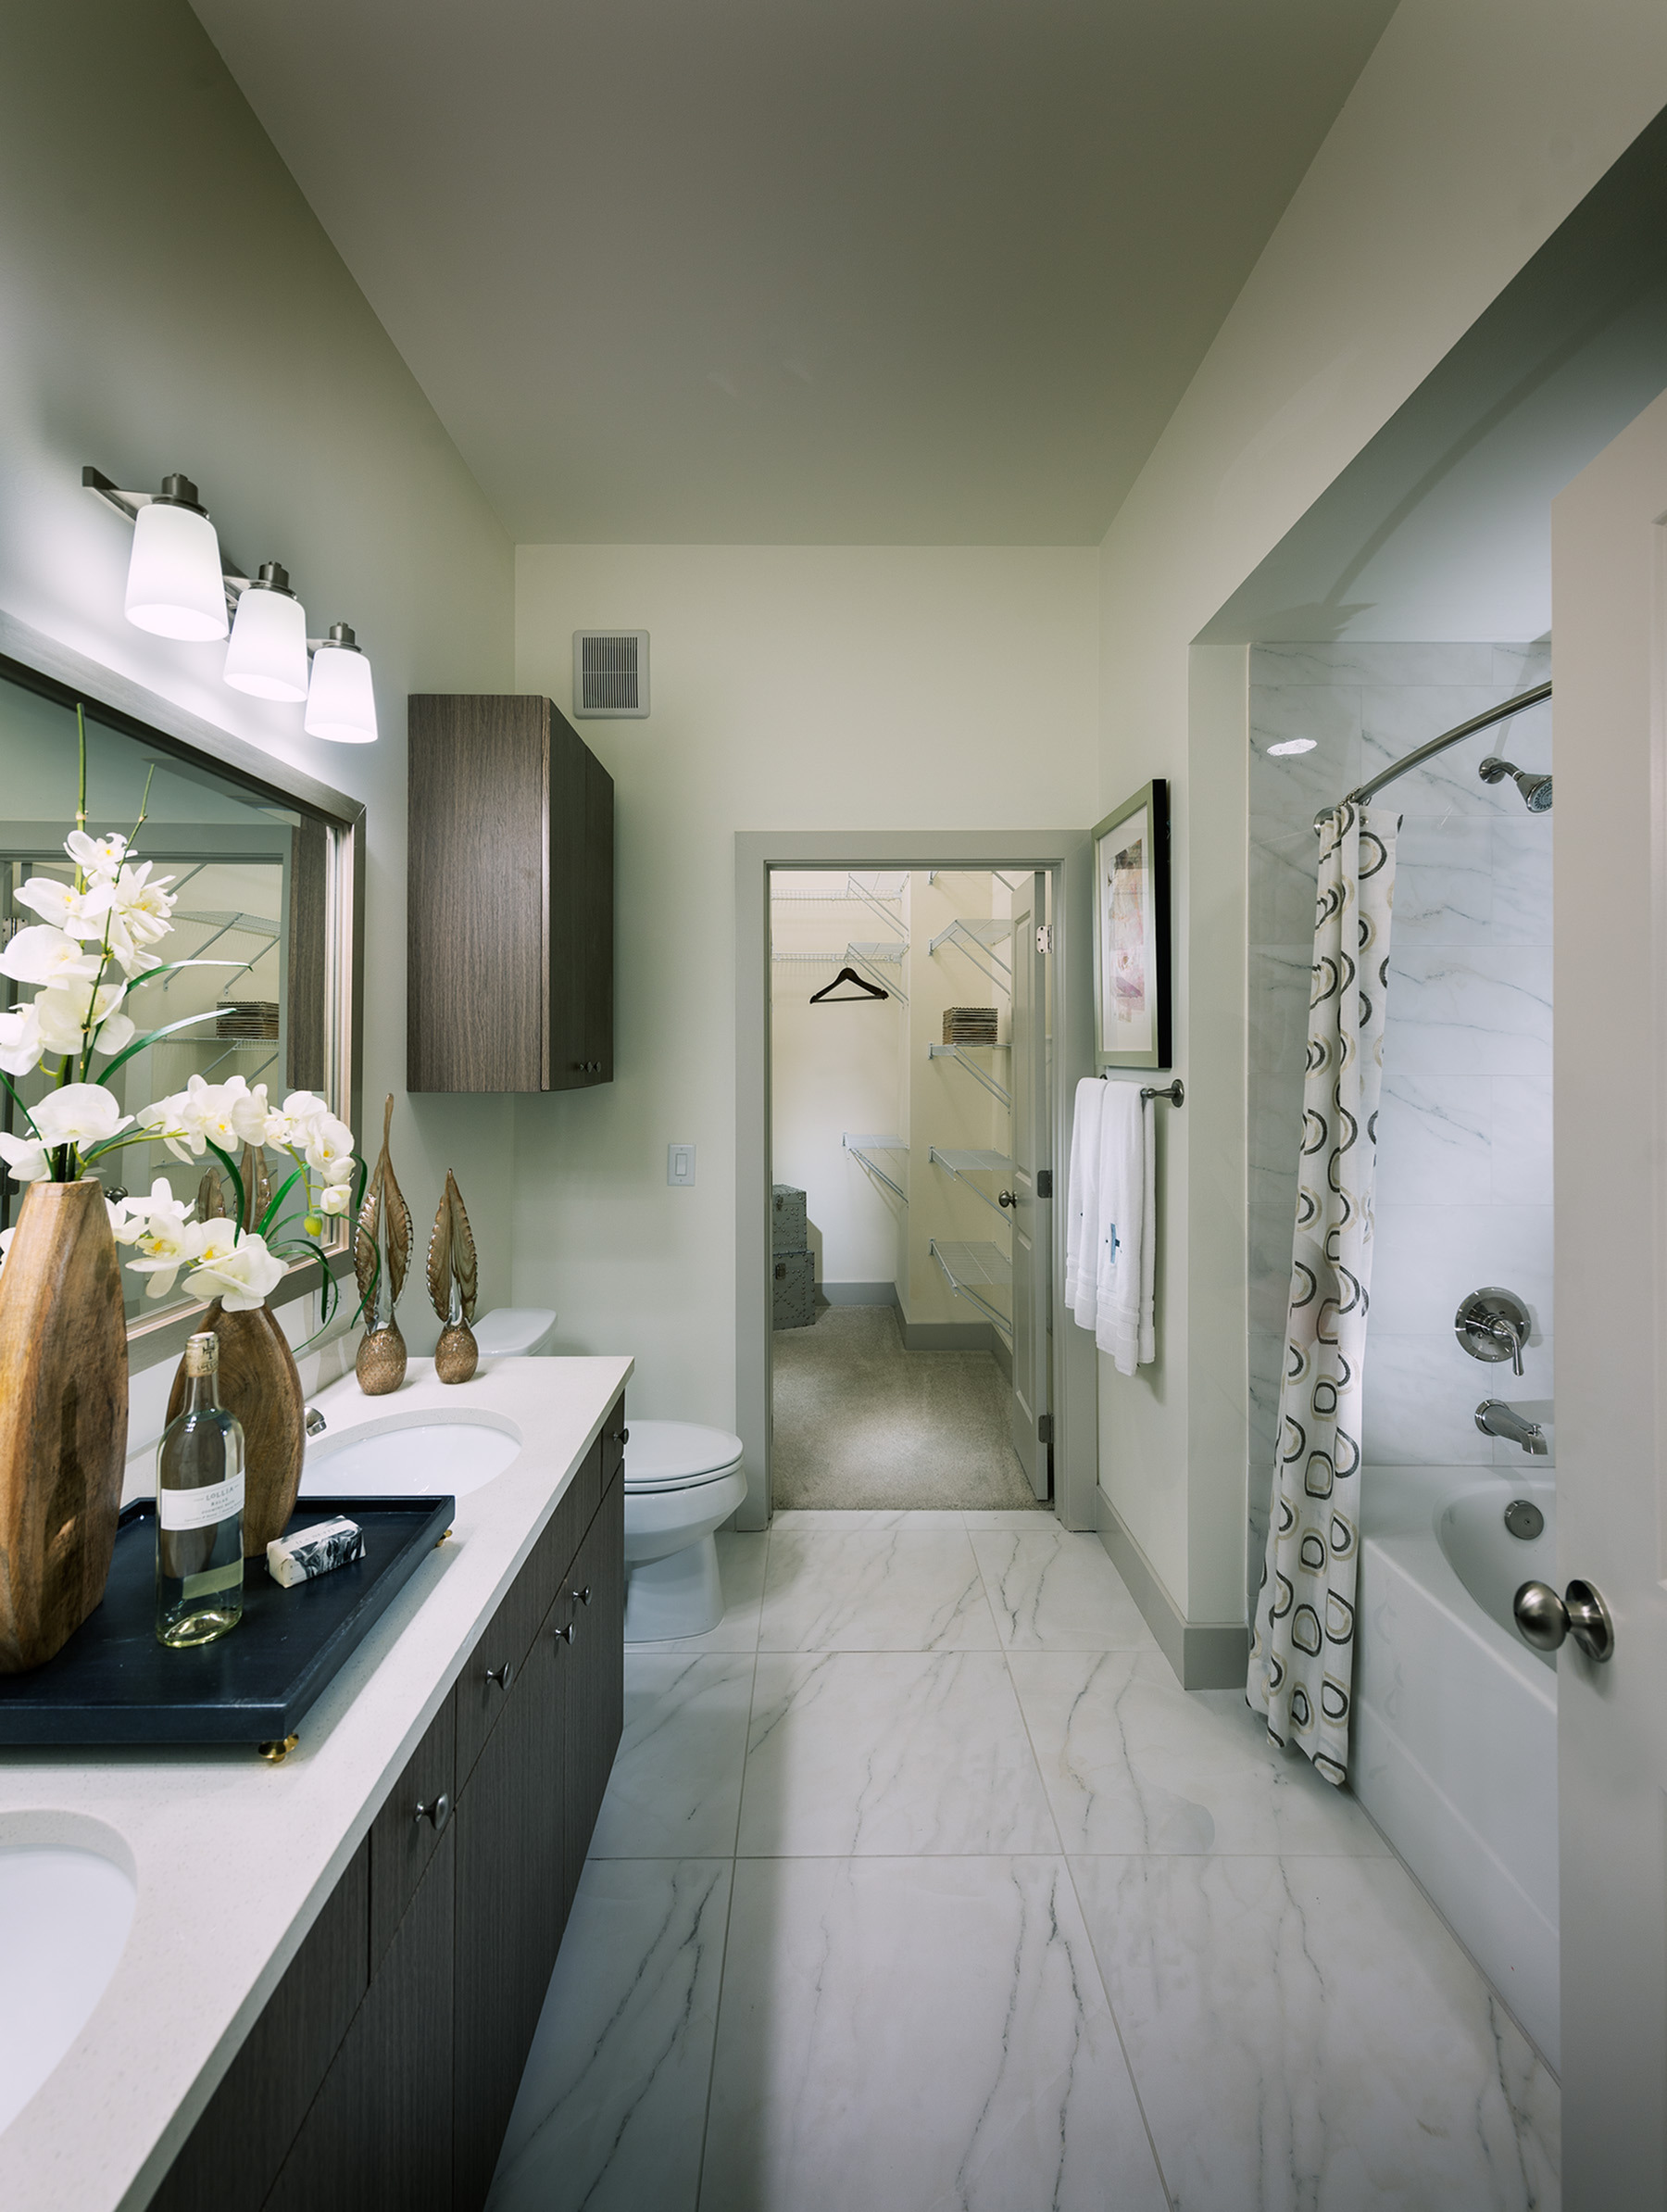 Image of Dual-vanity countertops and walk-in showers* for Hanover Cross Street